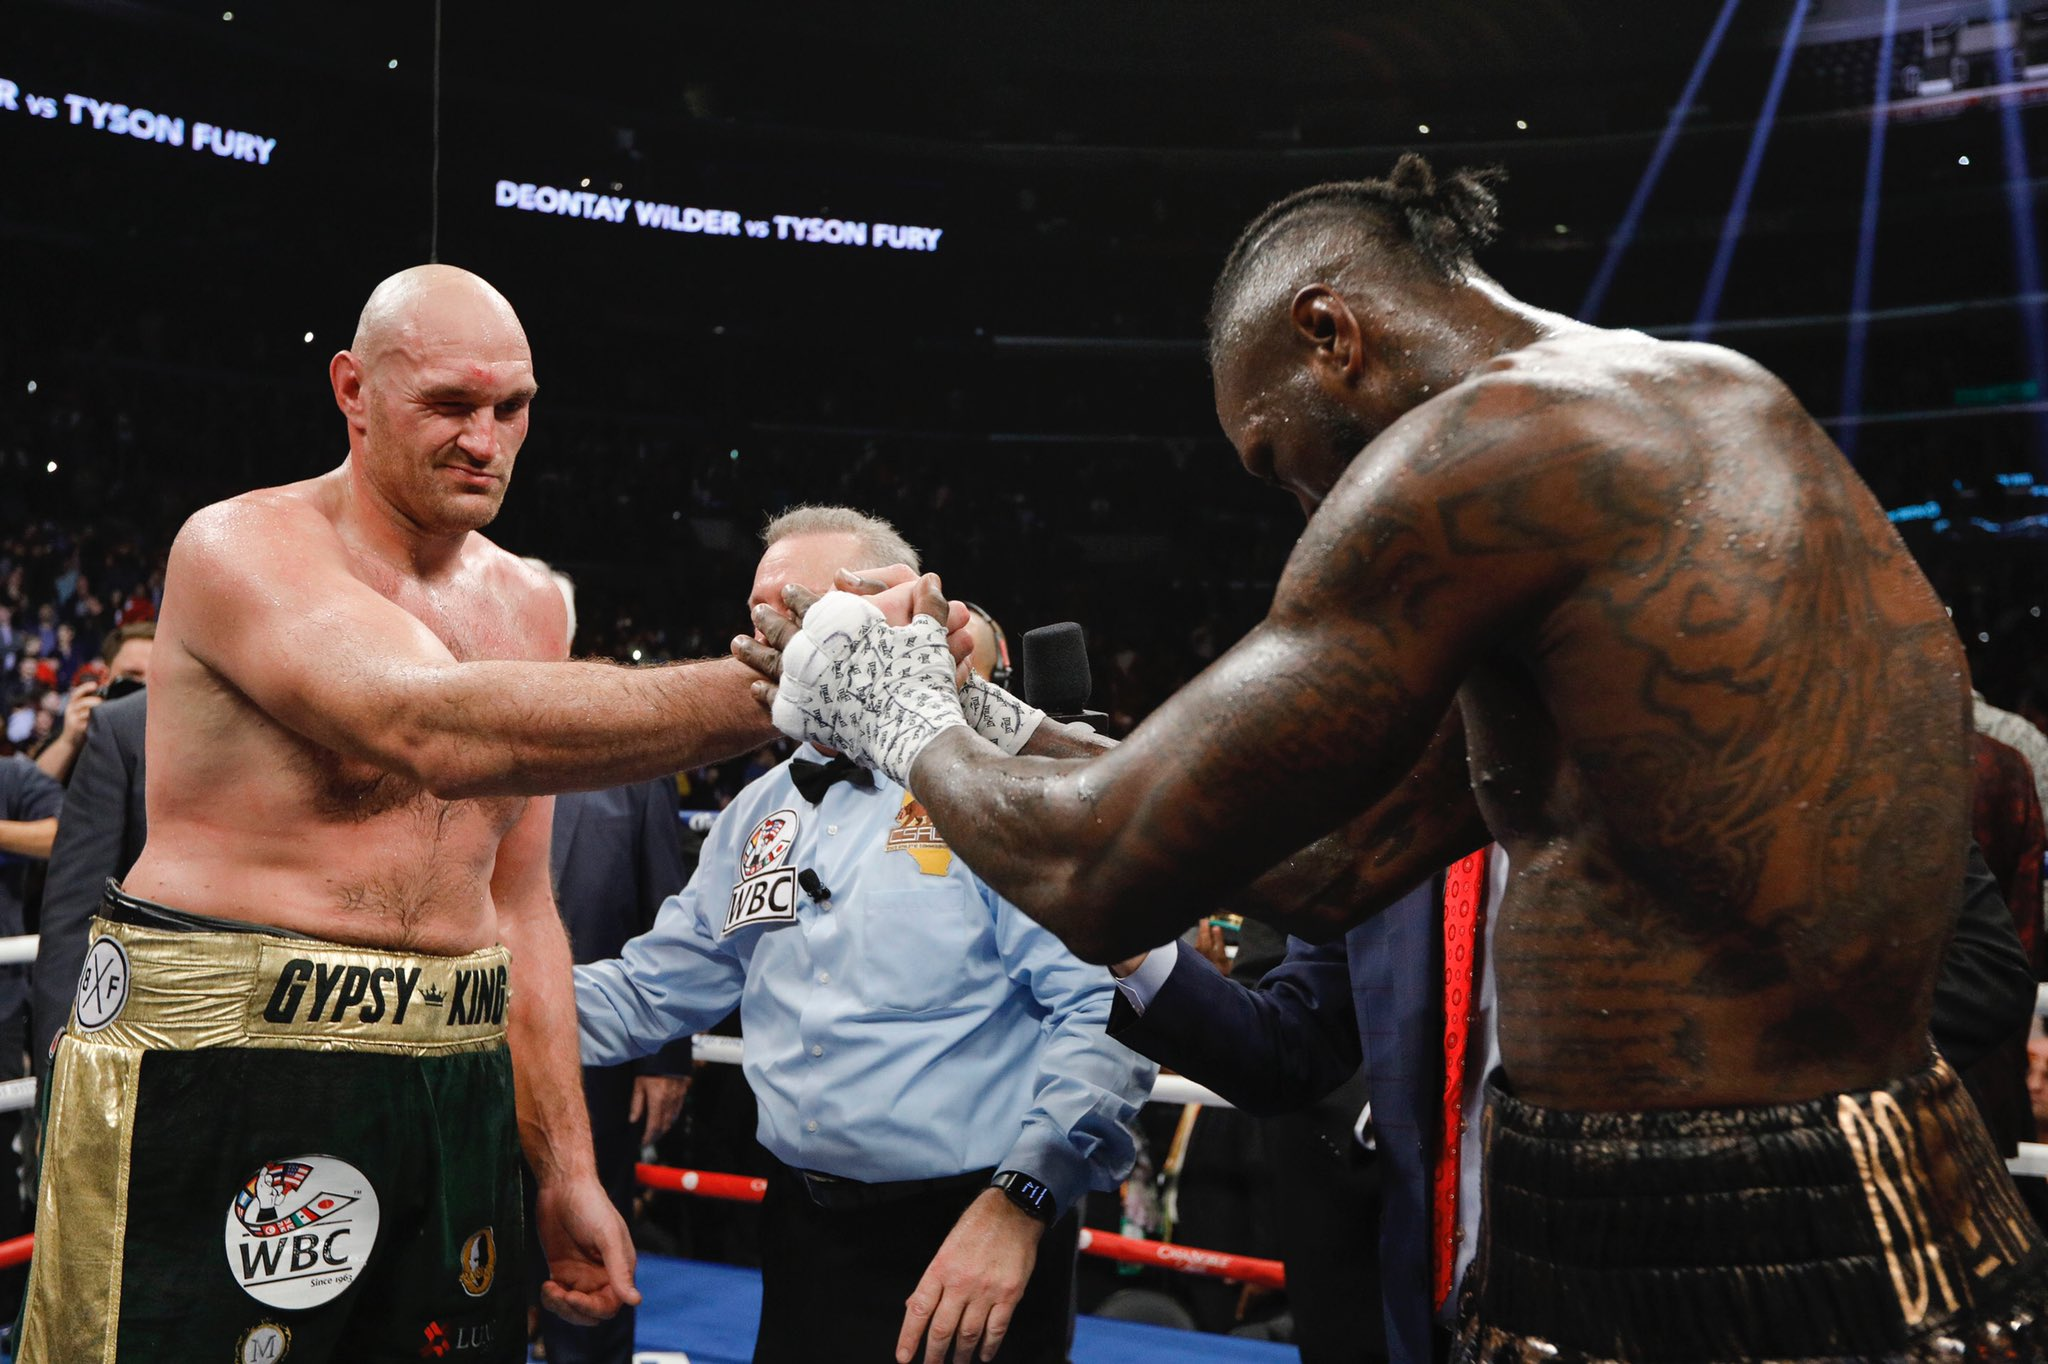 furywilder - WBC Orders Wilder-Fury Rematch